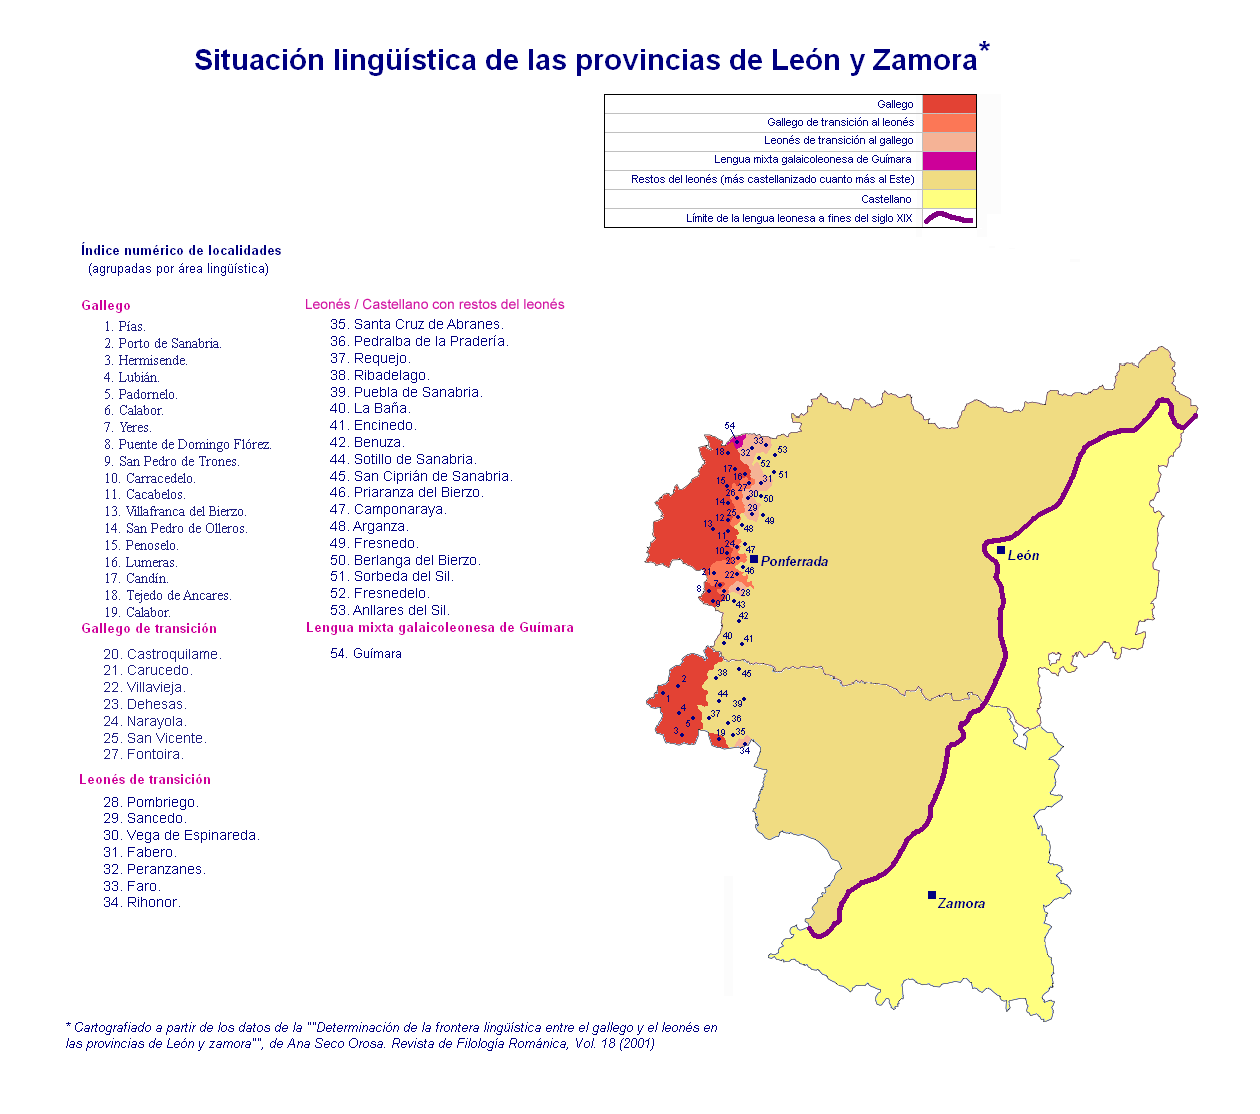 Current linguistic map of Zamora and León 2009